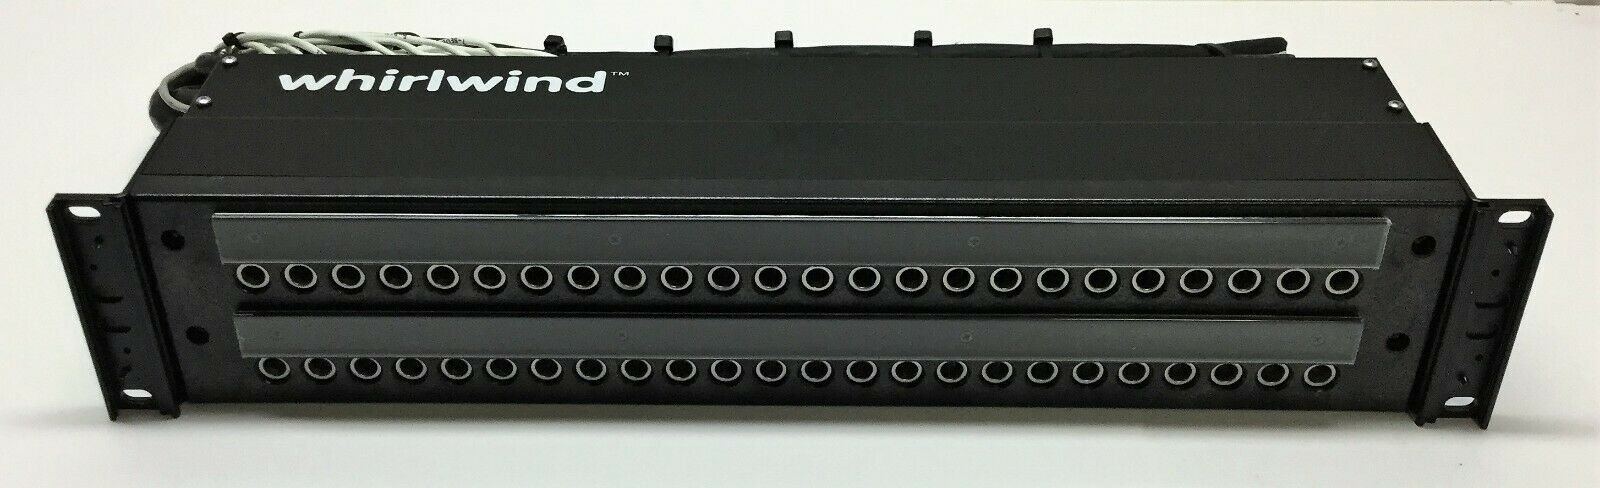 Very Nice 48 point Whirlwind Patch Bay-Rack Mountable